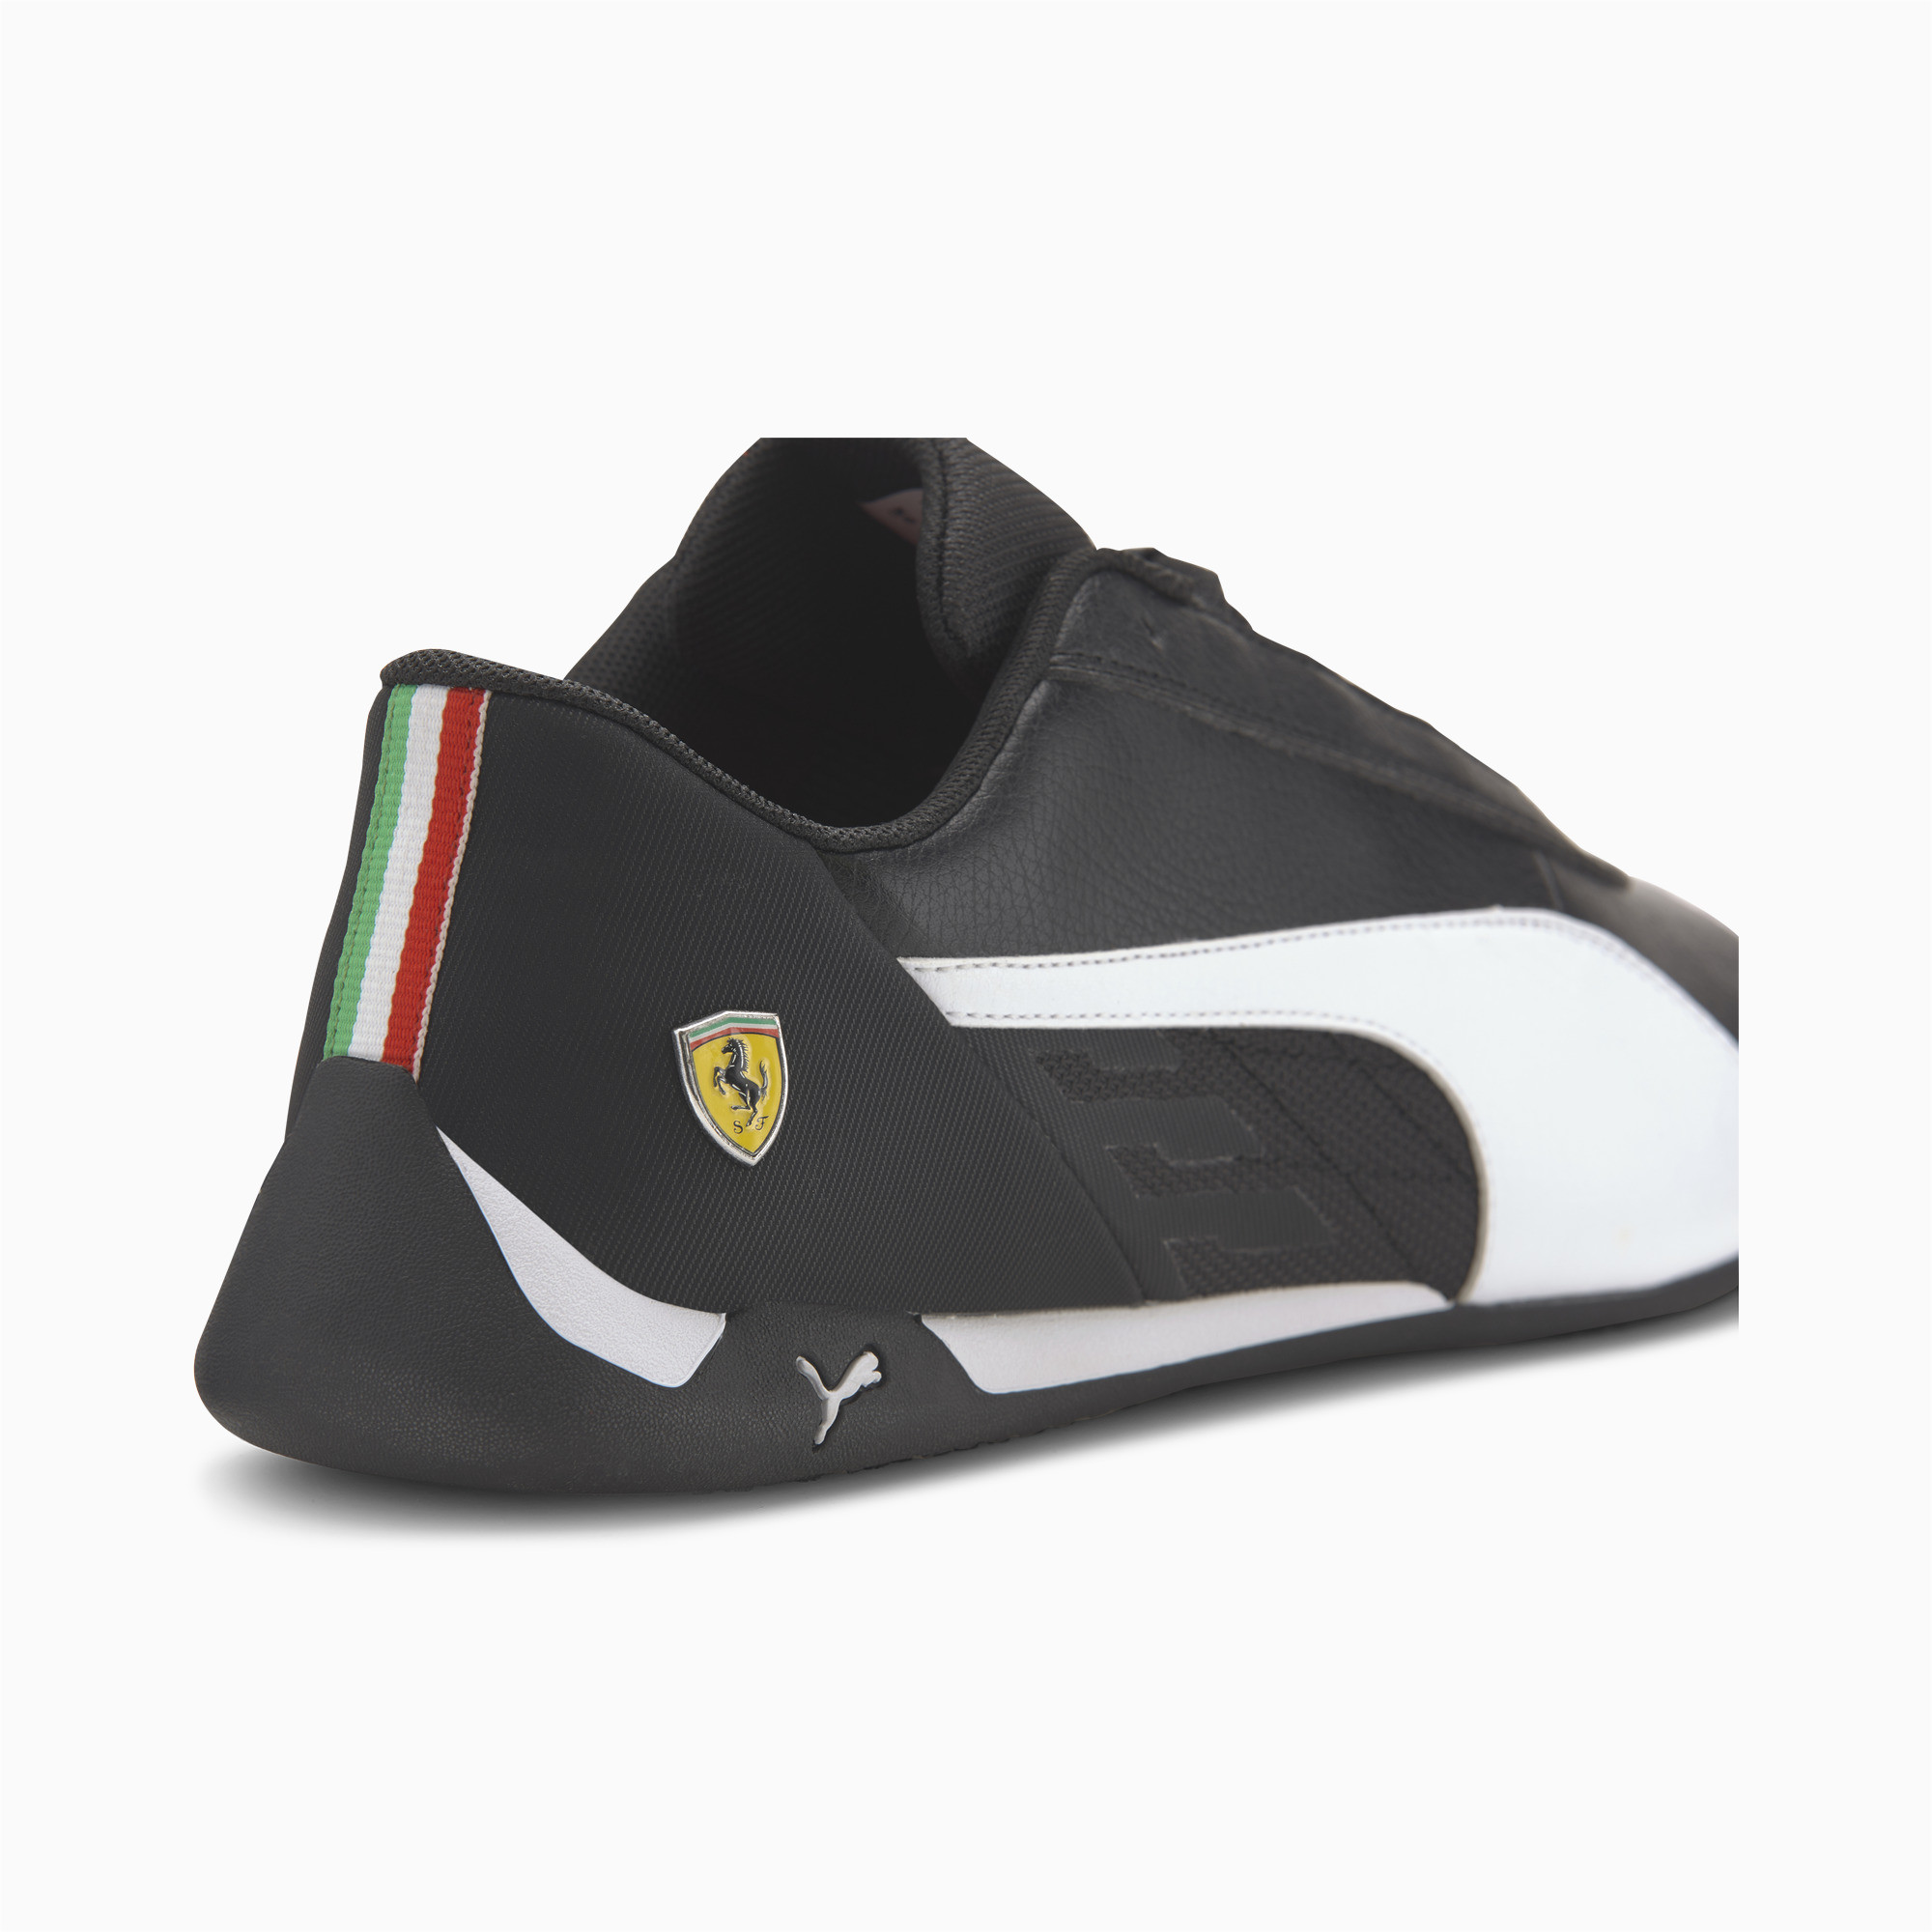 PUMA-Men-039-s-Scuderia-Ferrari-R-Cat-Motorsport-Shoes thumbnail 17